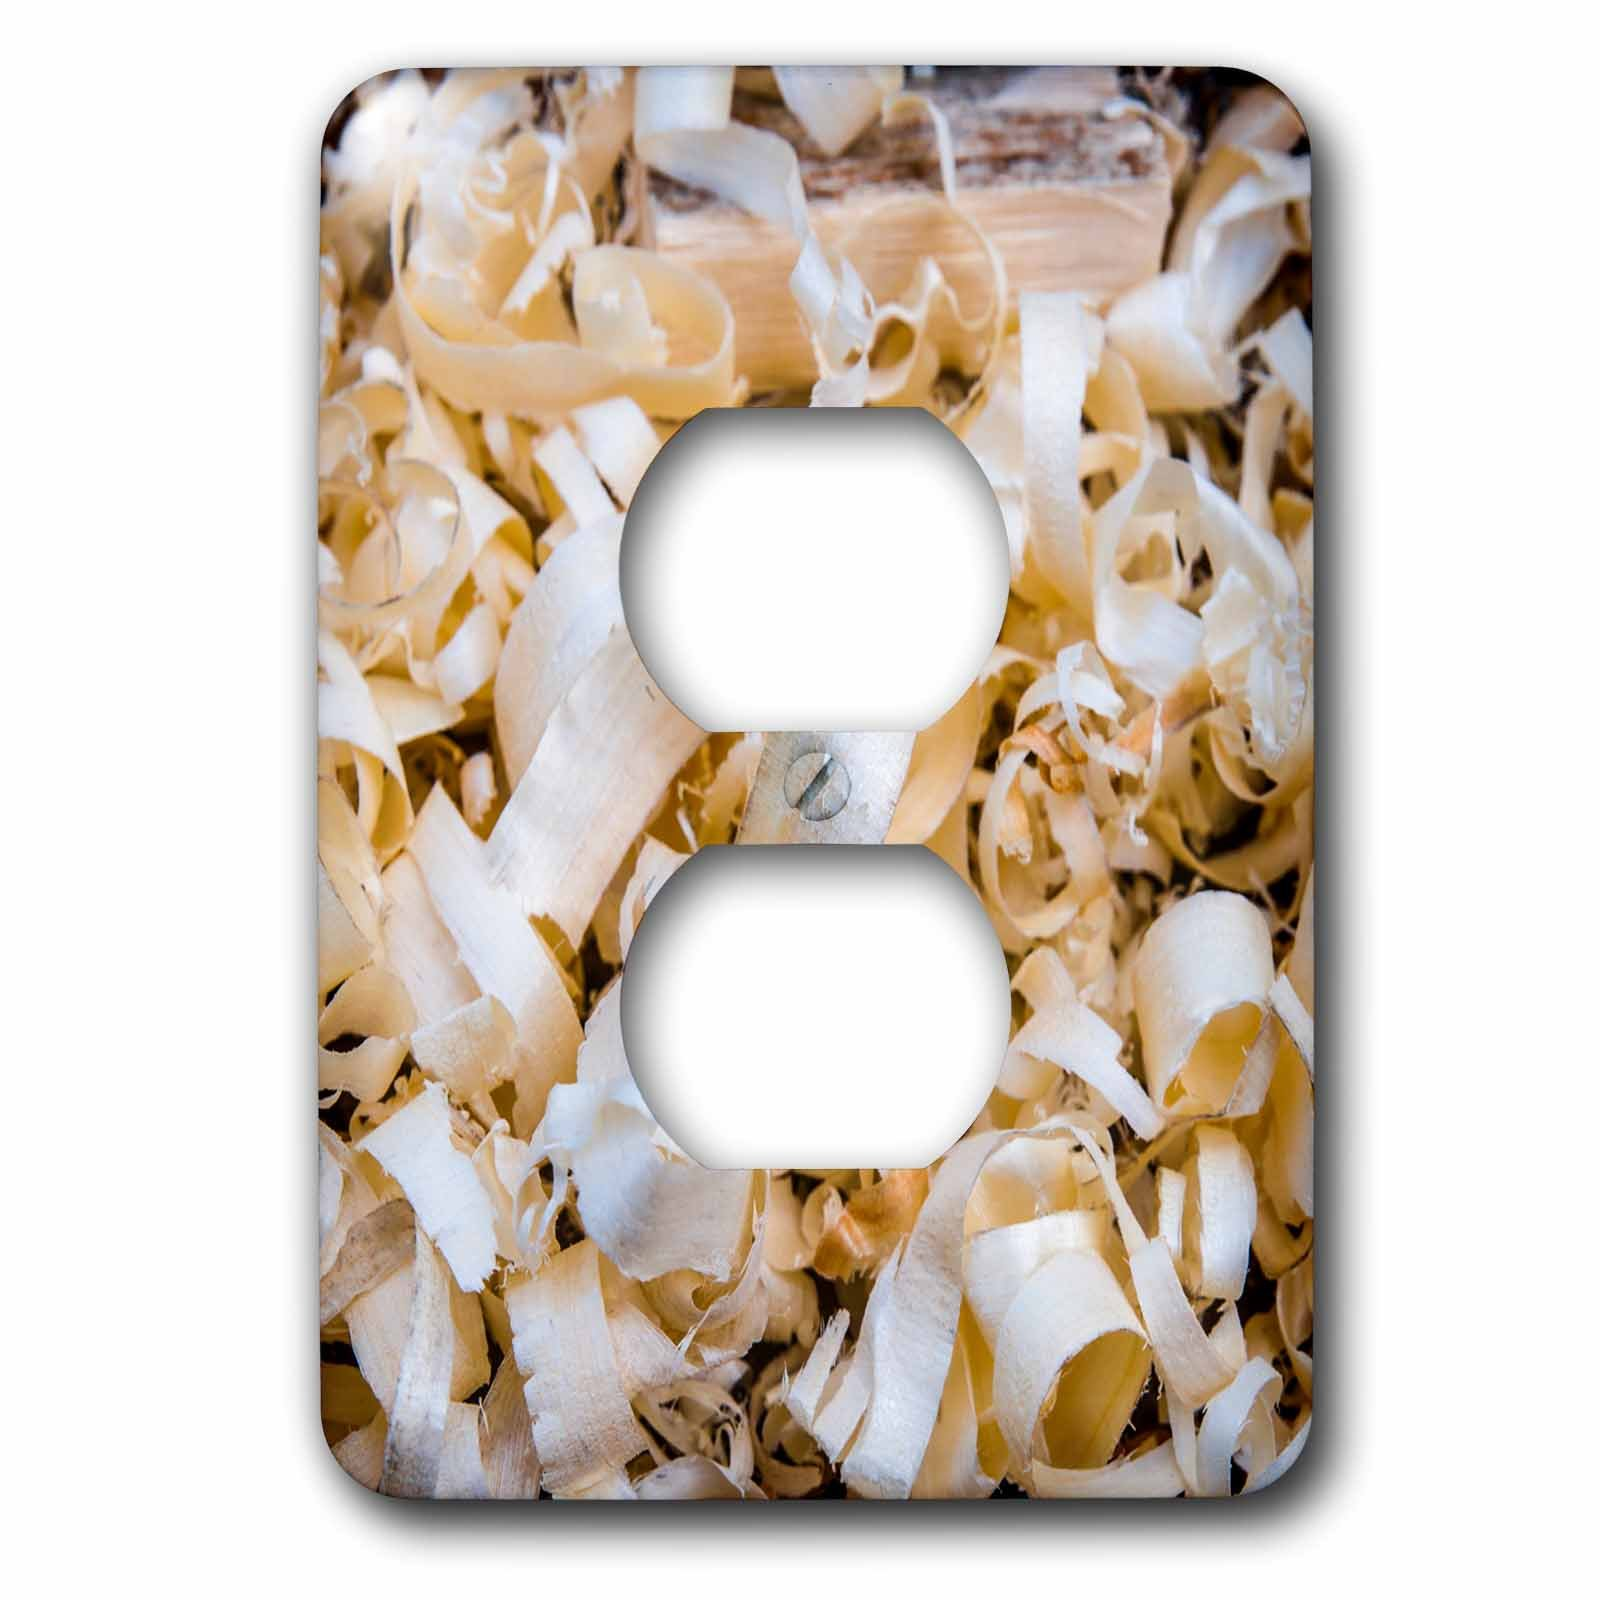 3dRose Alexis Photography - Objects - Pile of wooden shavings left after the woodwork activity - Light Switch Covers - 2 plug outlet cover (lsp_273241_6)